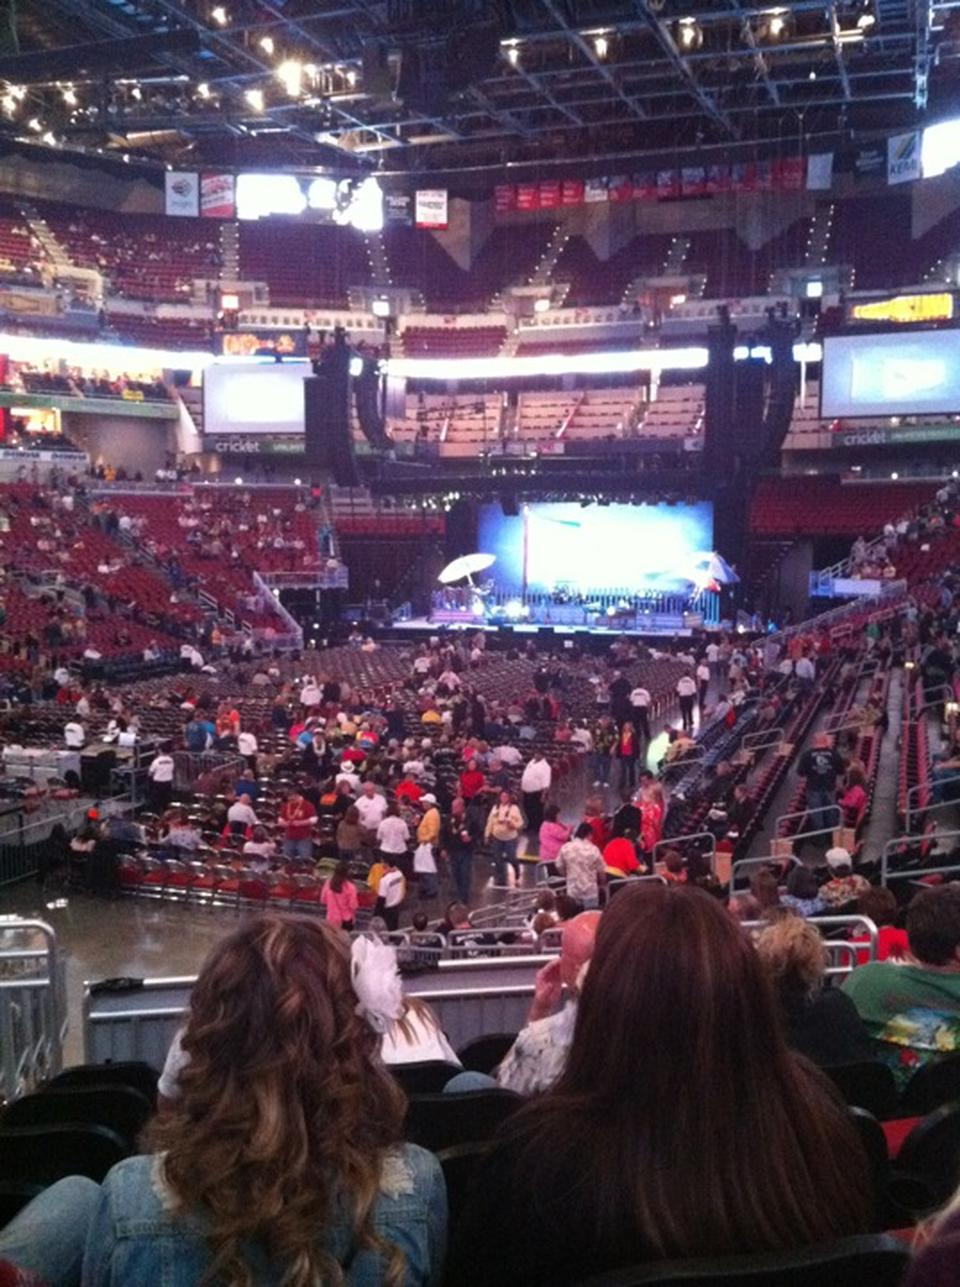 Bad Setup Kfc Yum! Center Section 109 Concert Seating